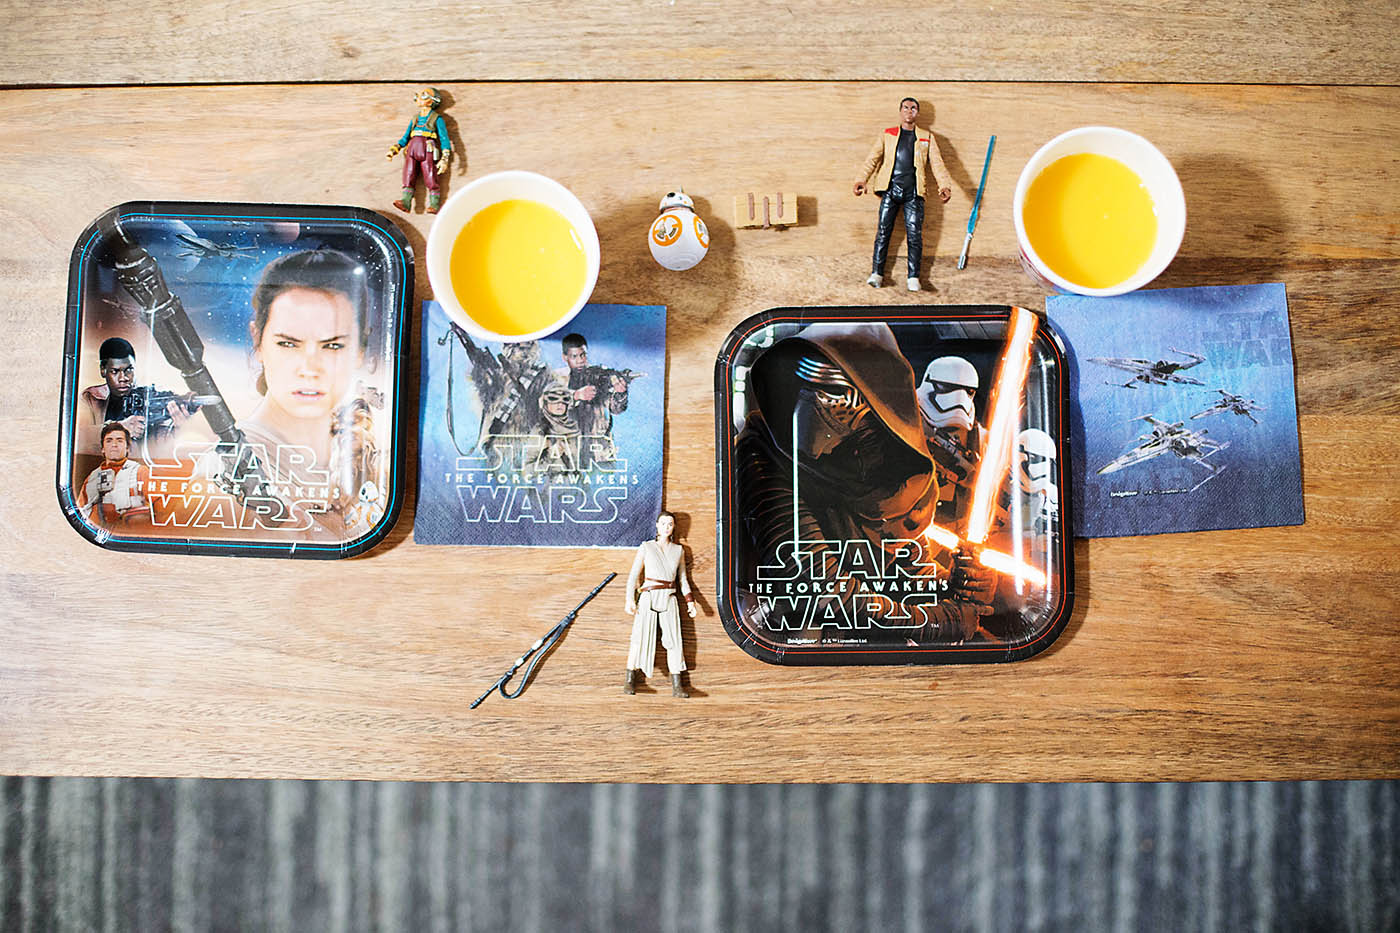 DIY droid targets inspired by Star Wars: The Force Awakens